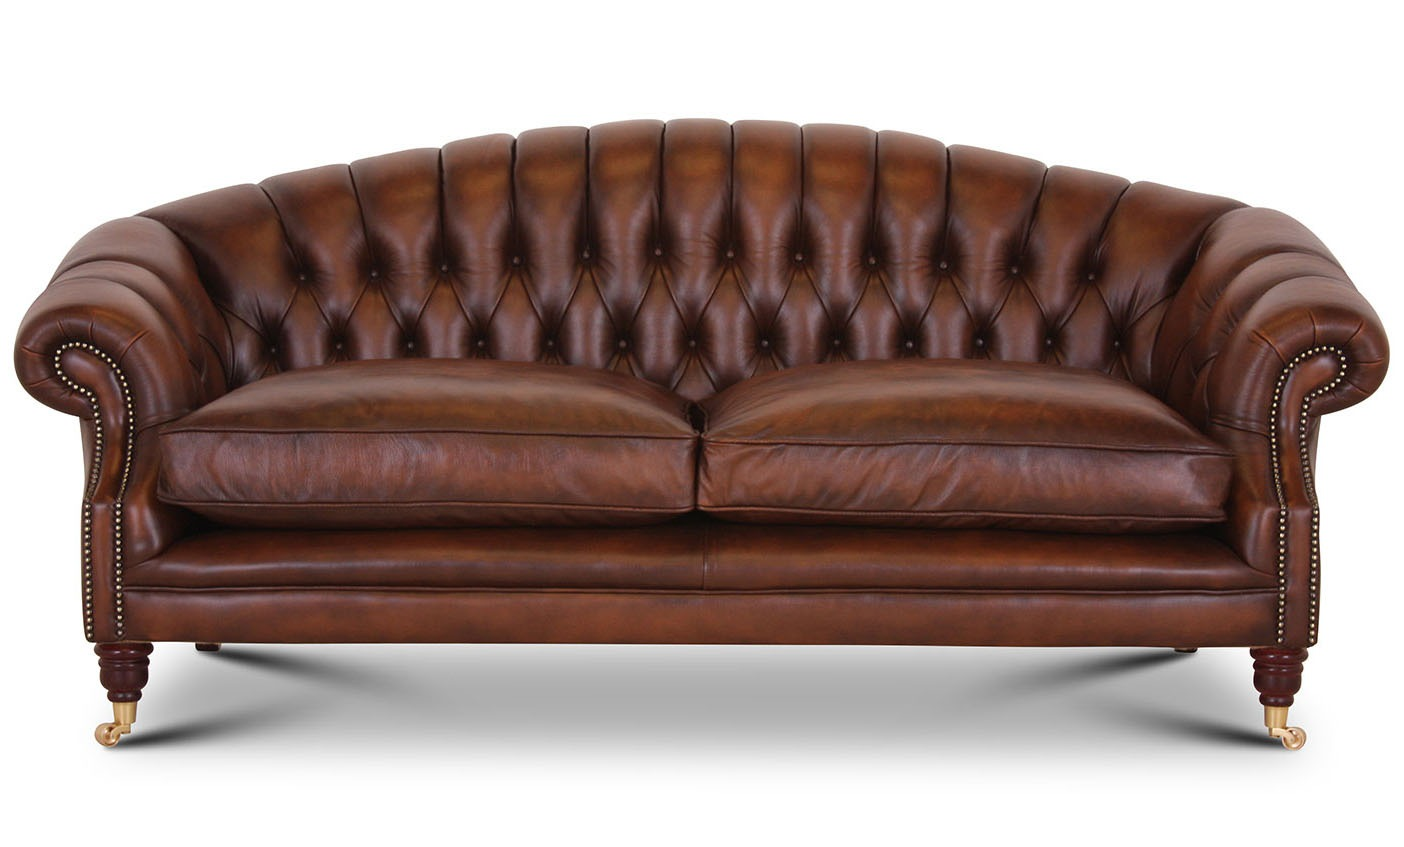 Buckingham 3 seat sofa in Antique Autumn Tan